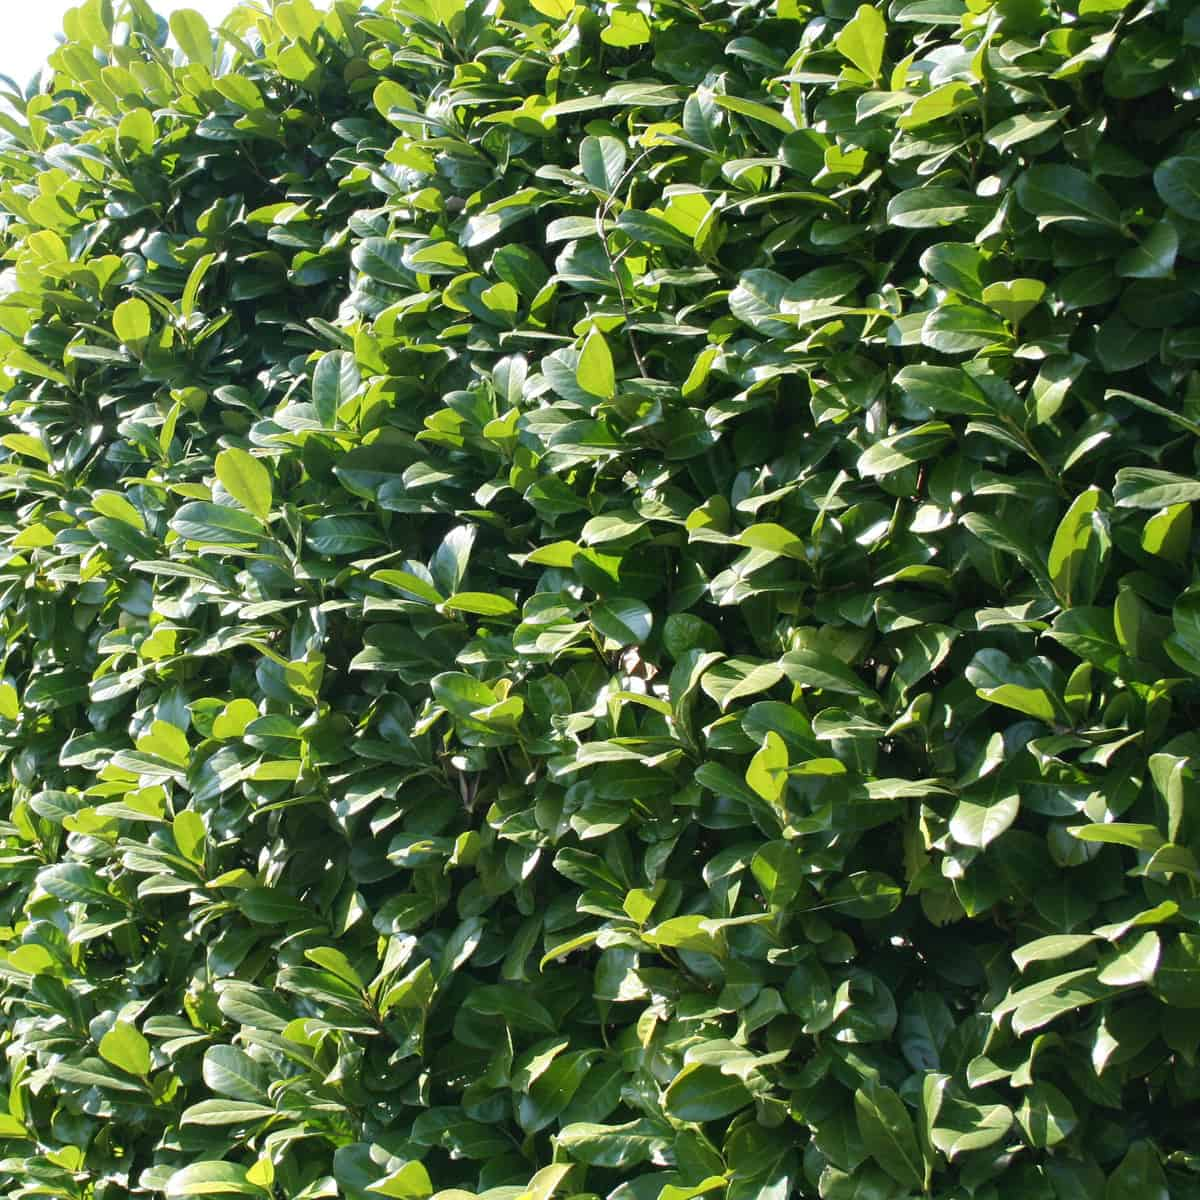 the cherry laurel offers a beautiful formal hedge